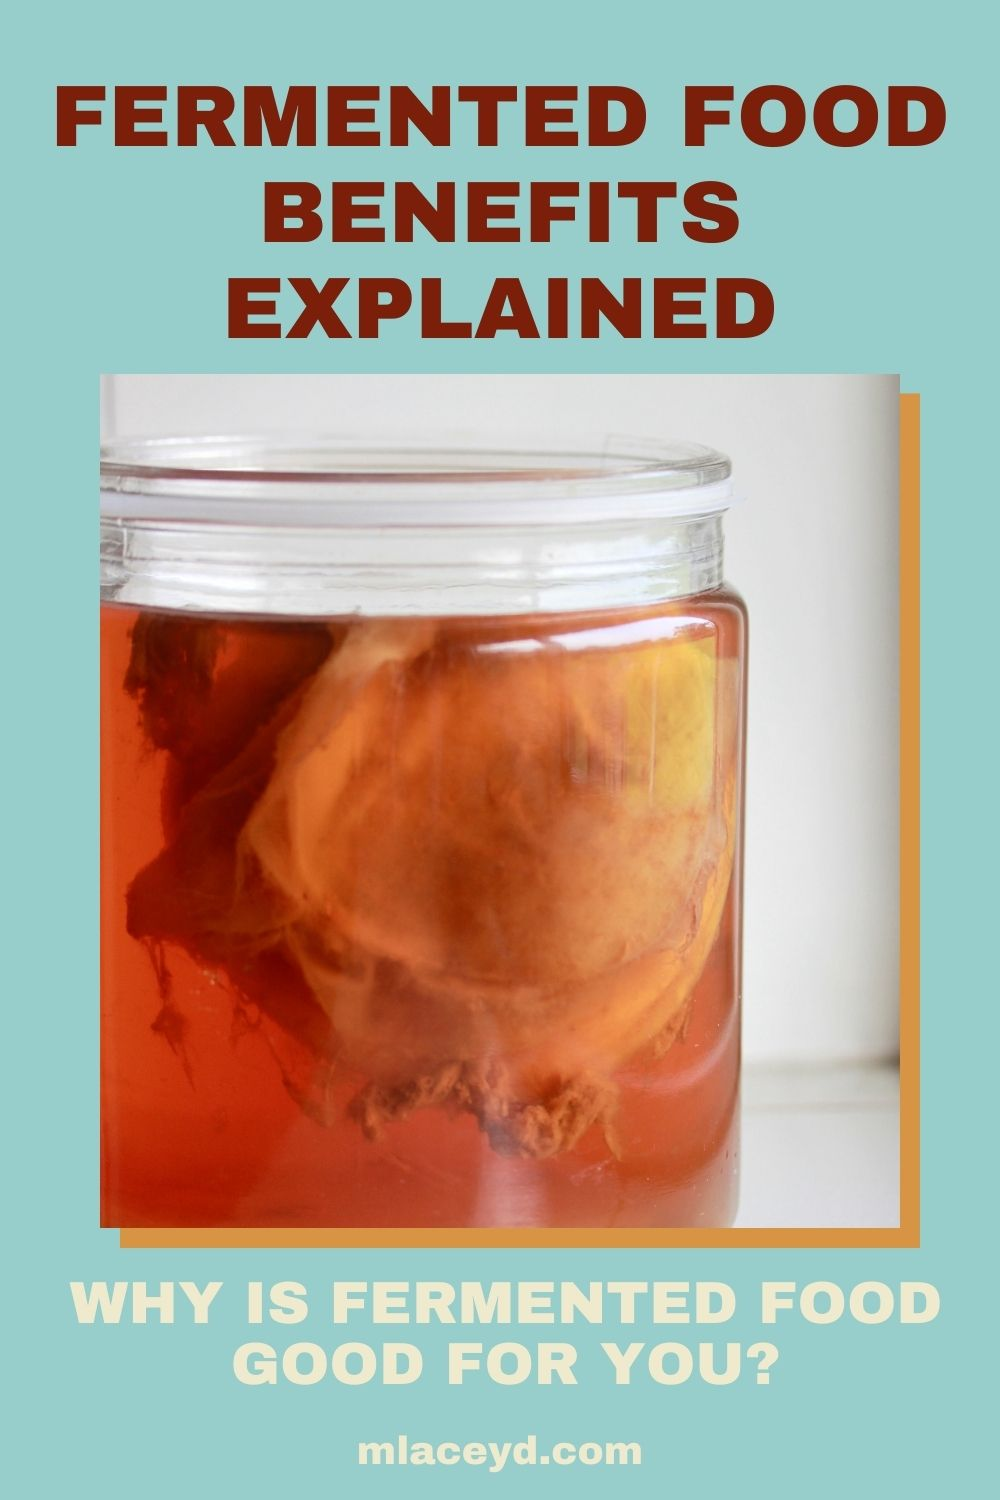 fermented food benefits explained: why is fermented food food for you?